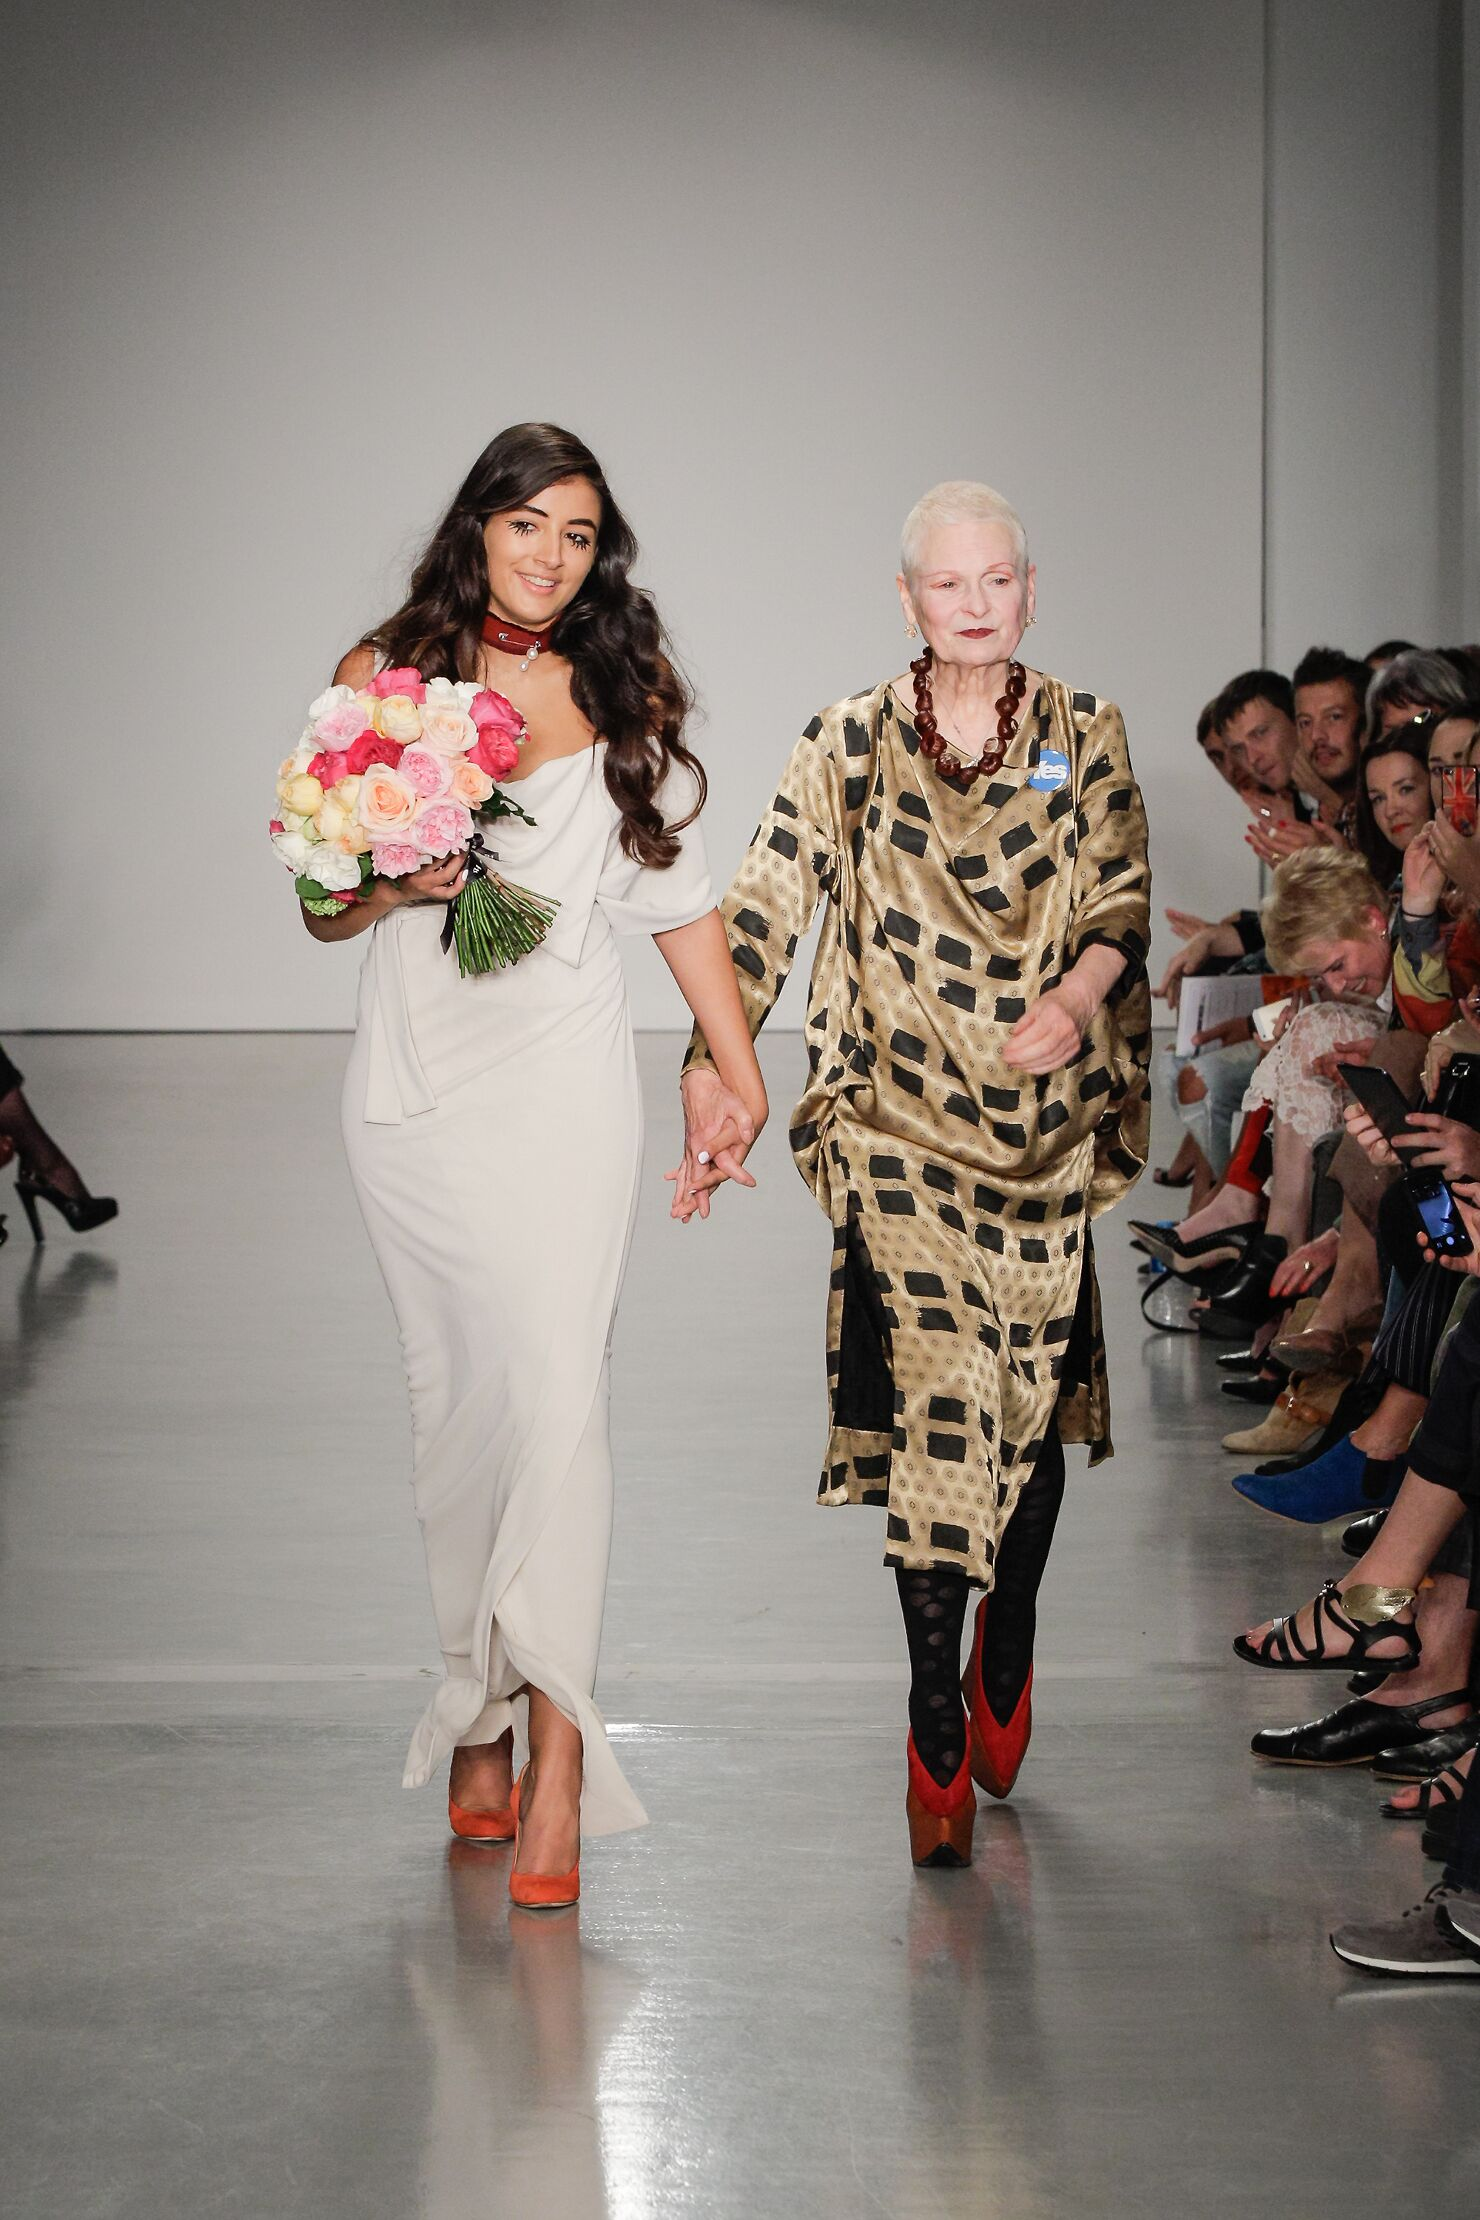 Finale SS 2015 Vivienne Westwood Red Label Fashion Show